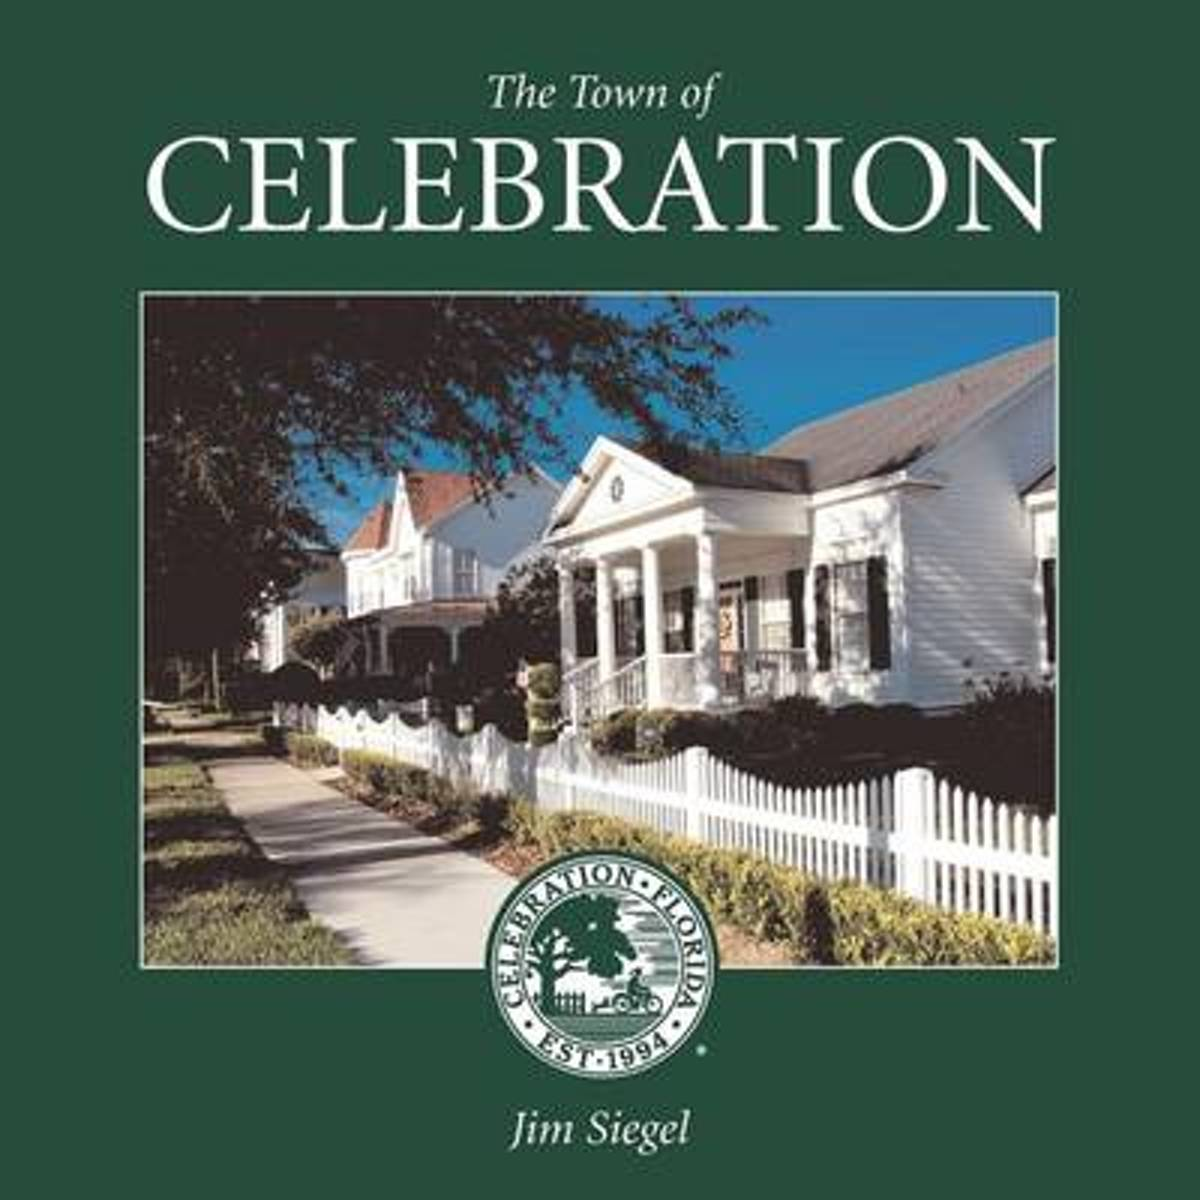 The Town of Celebration